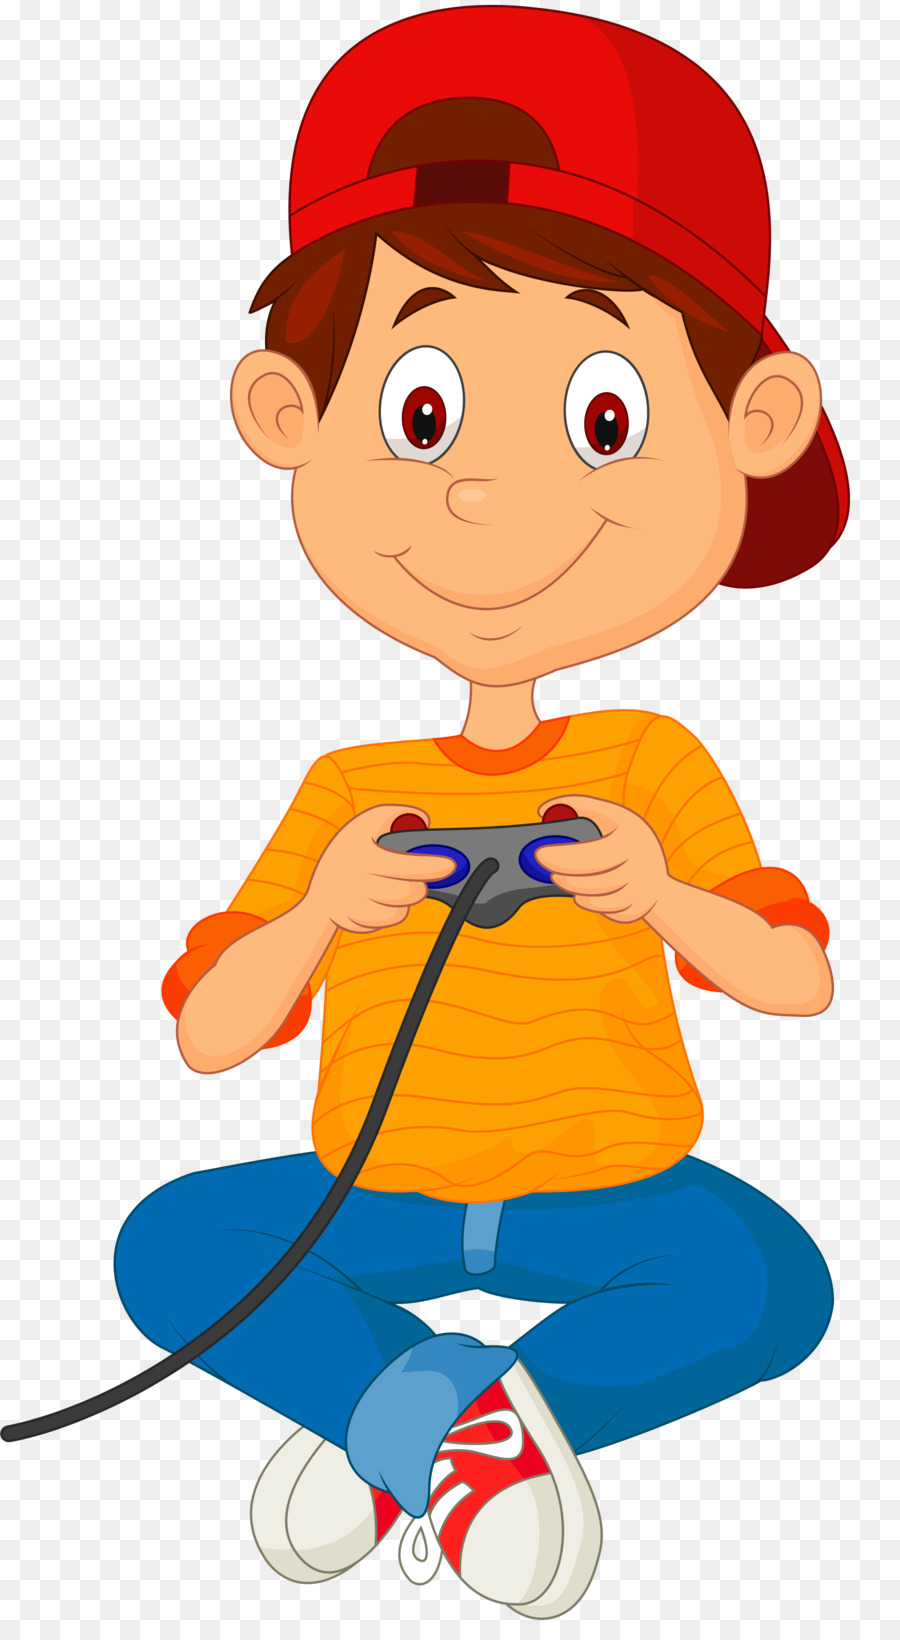 Boy playing video games clipart picture freeuse Boy Cartoon png download - 2771*4999 - Free Transparent Video Games ... picture freeuse